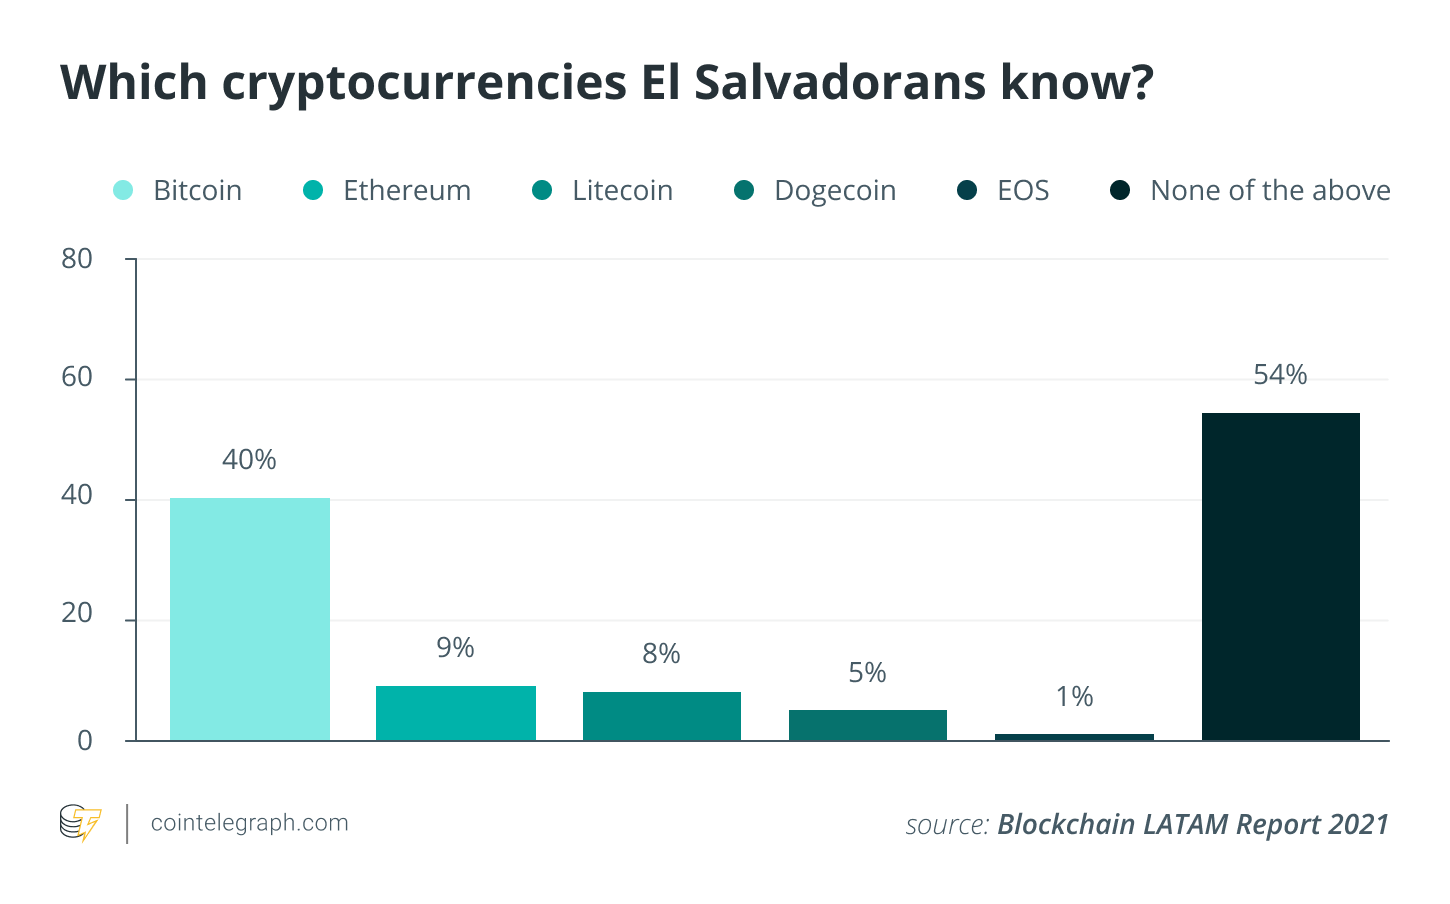 54 of Salvadorans are not familiar with Bitcoin survey suggests